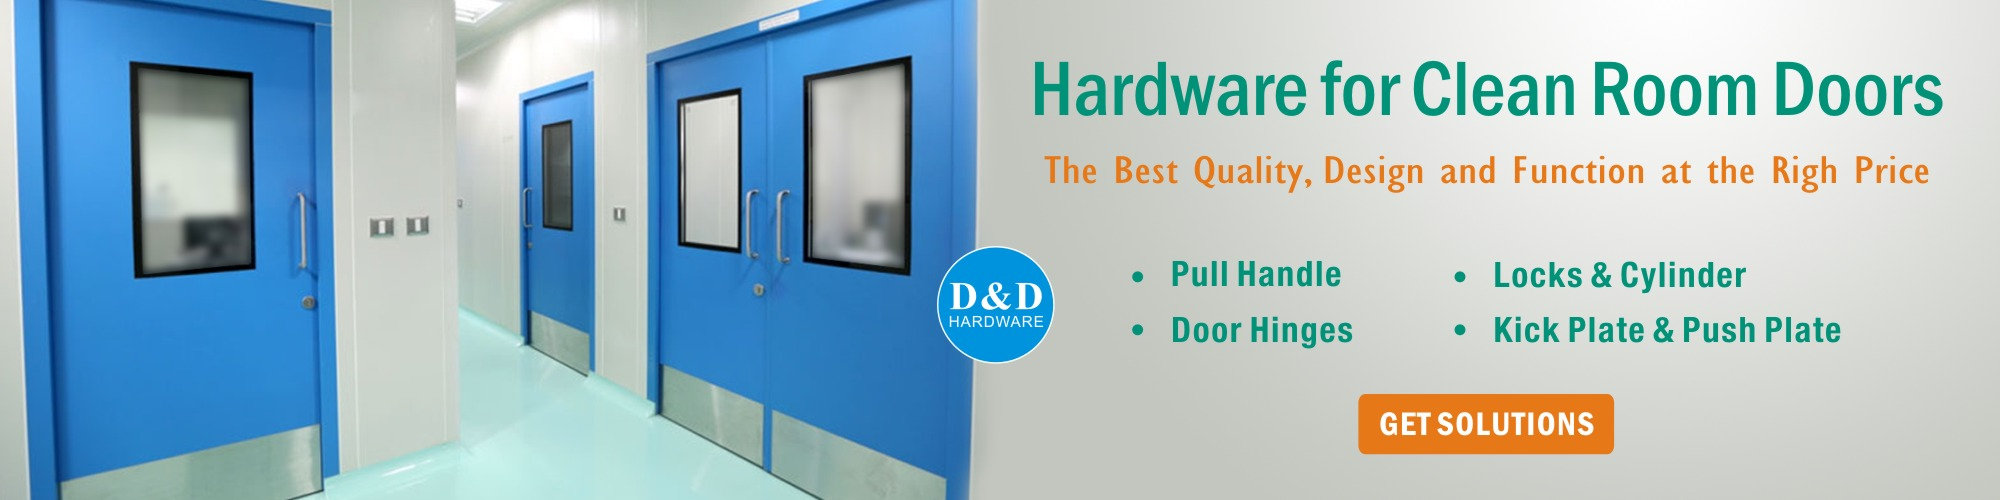 Door Hardware for Clean Room Doors-D&D Hardware manufacturer